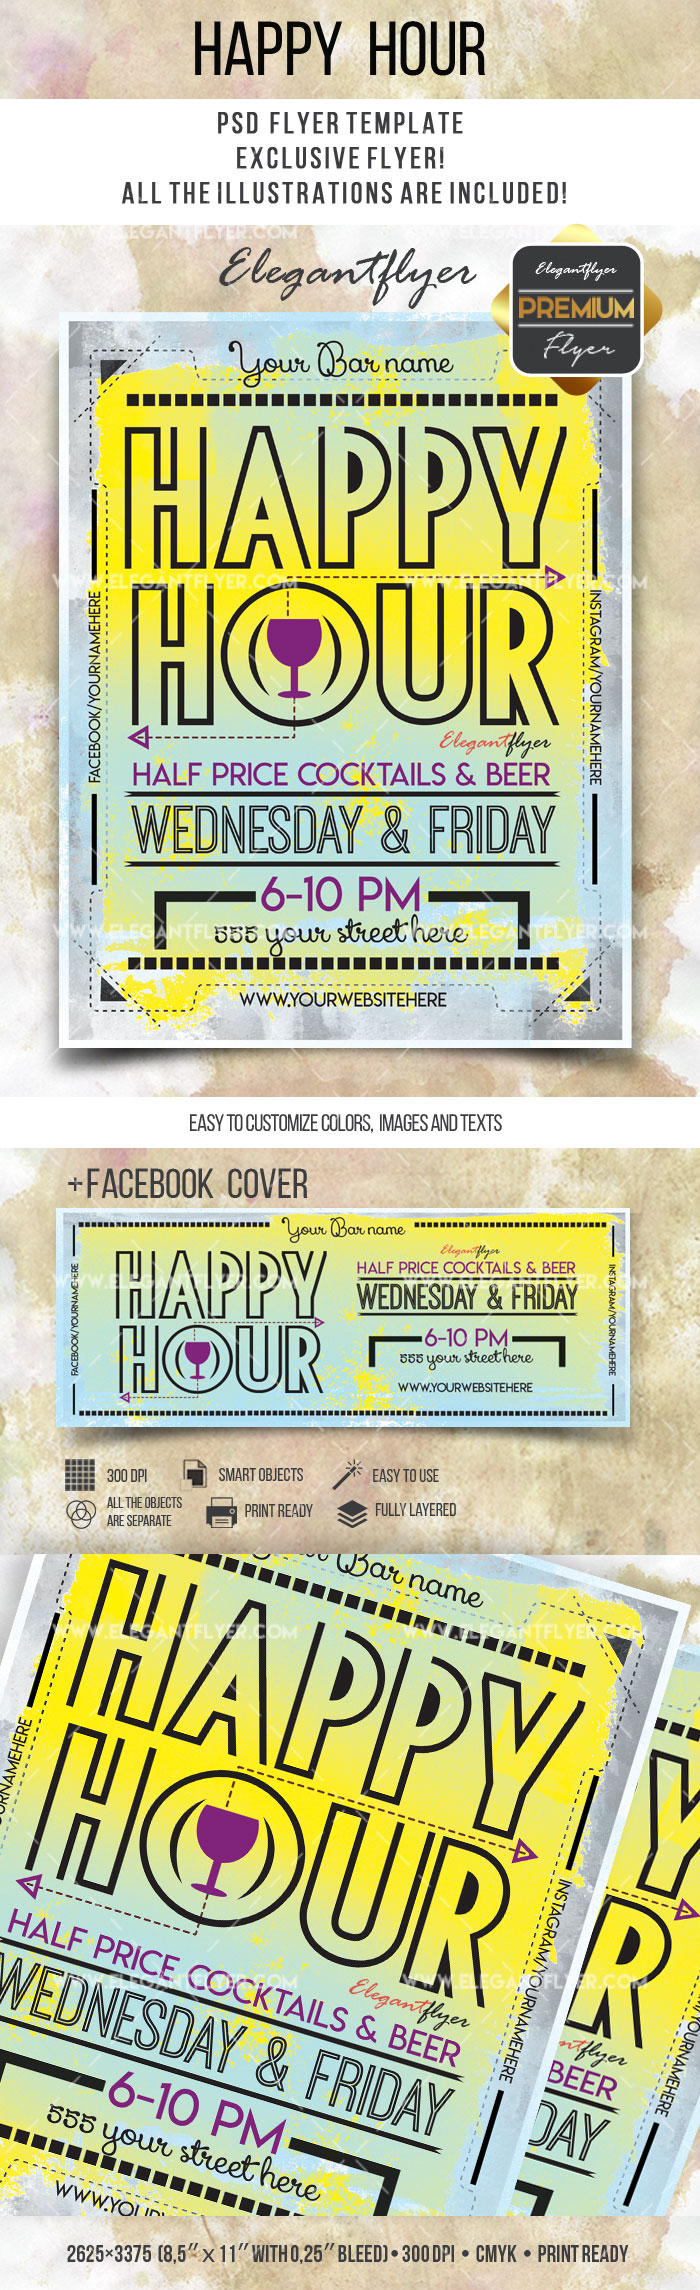 Cocktails Happy Hour Flyer